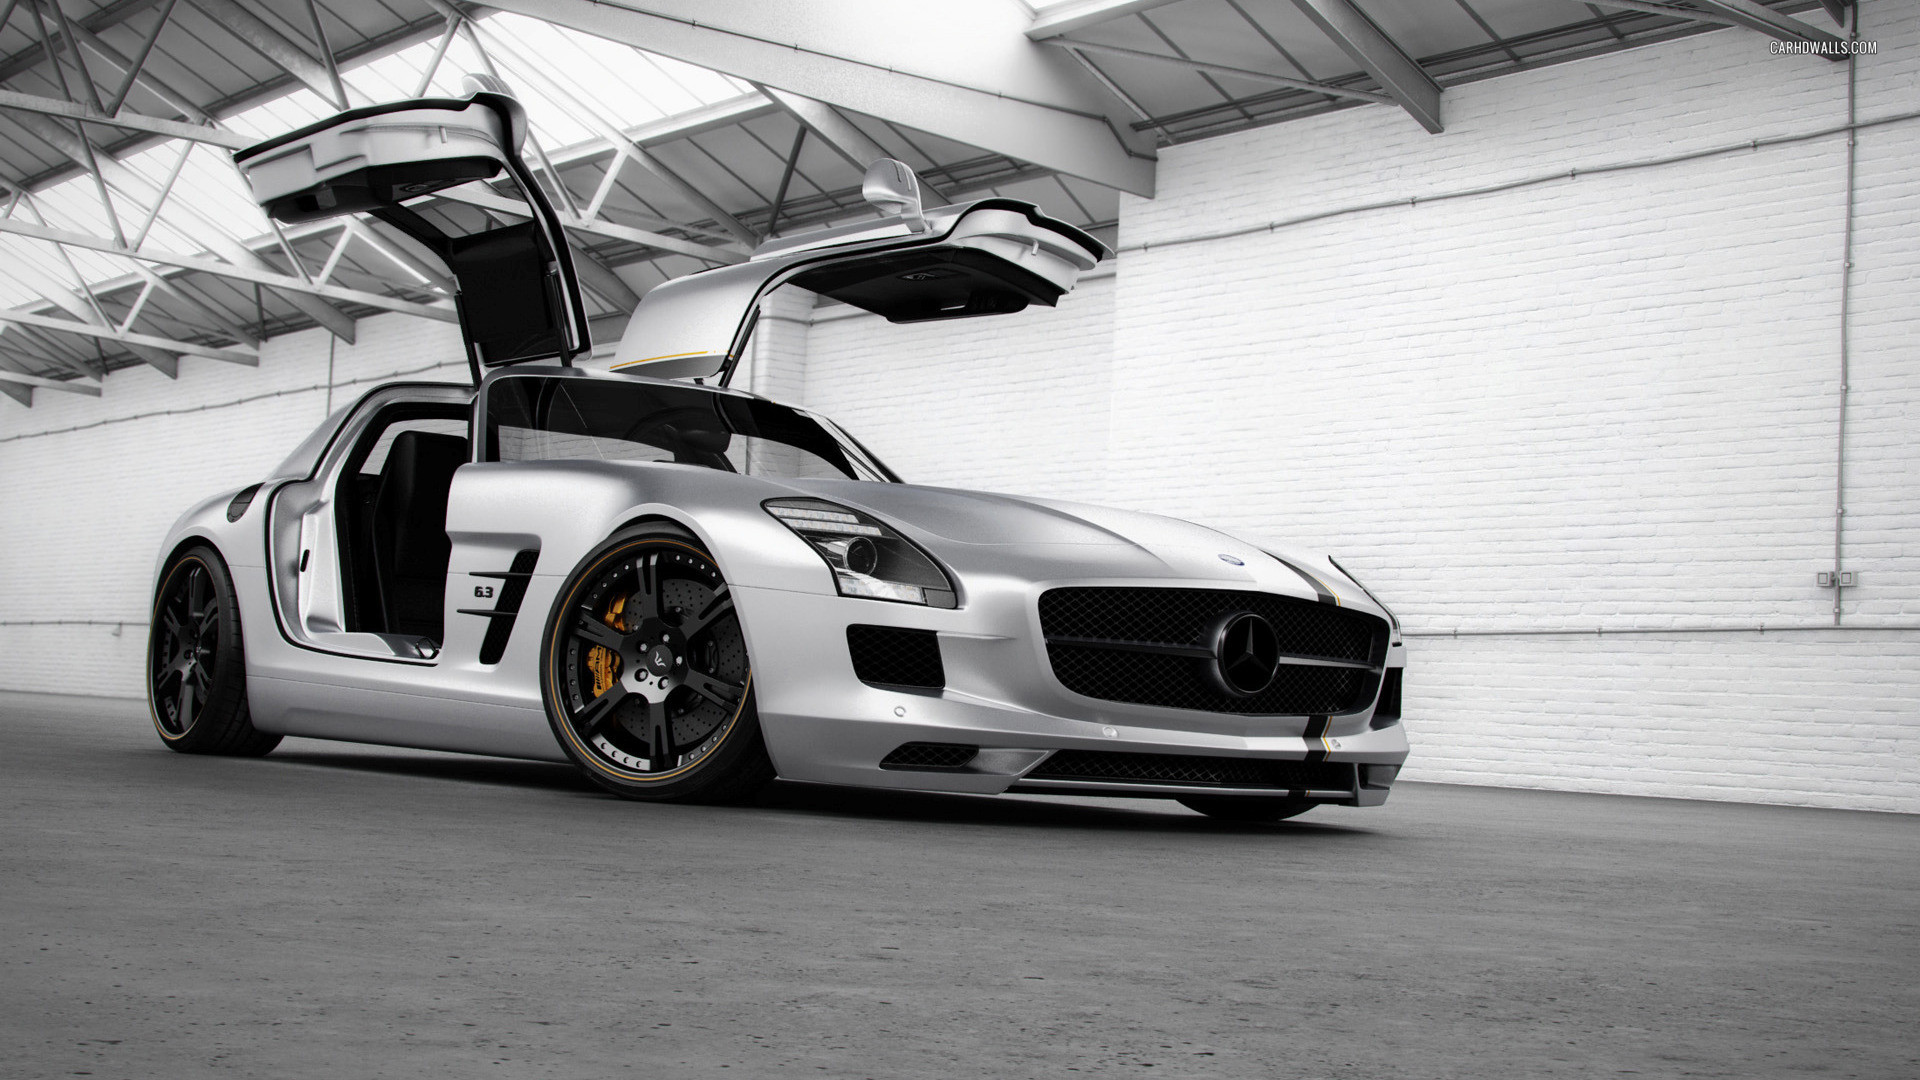 1920x1080 ... Mercedes-Benz SLS AMG Wallpaper ...